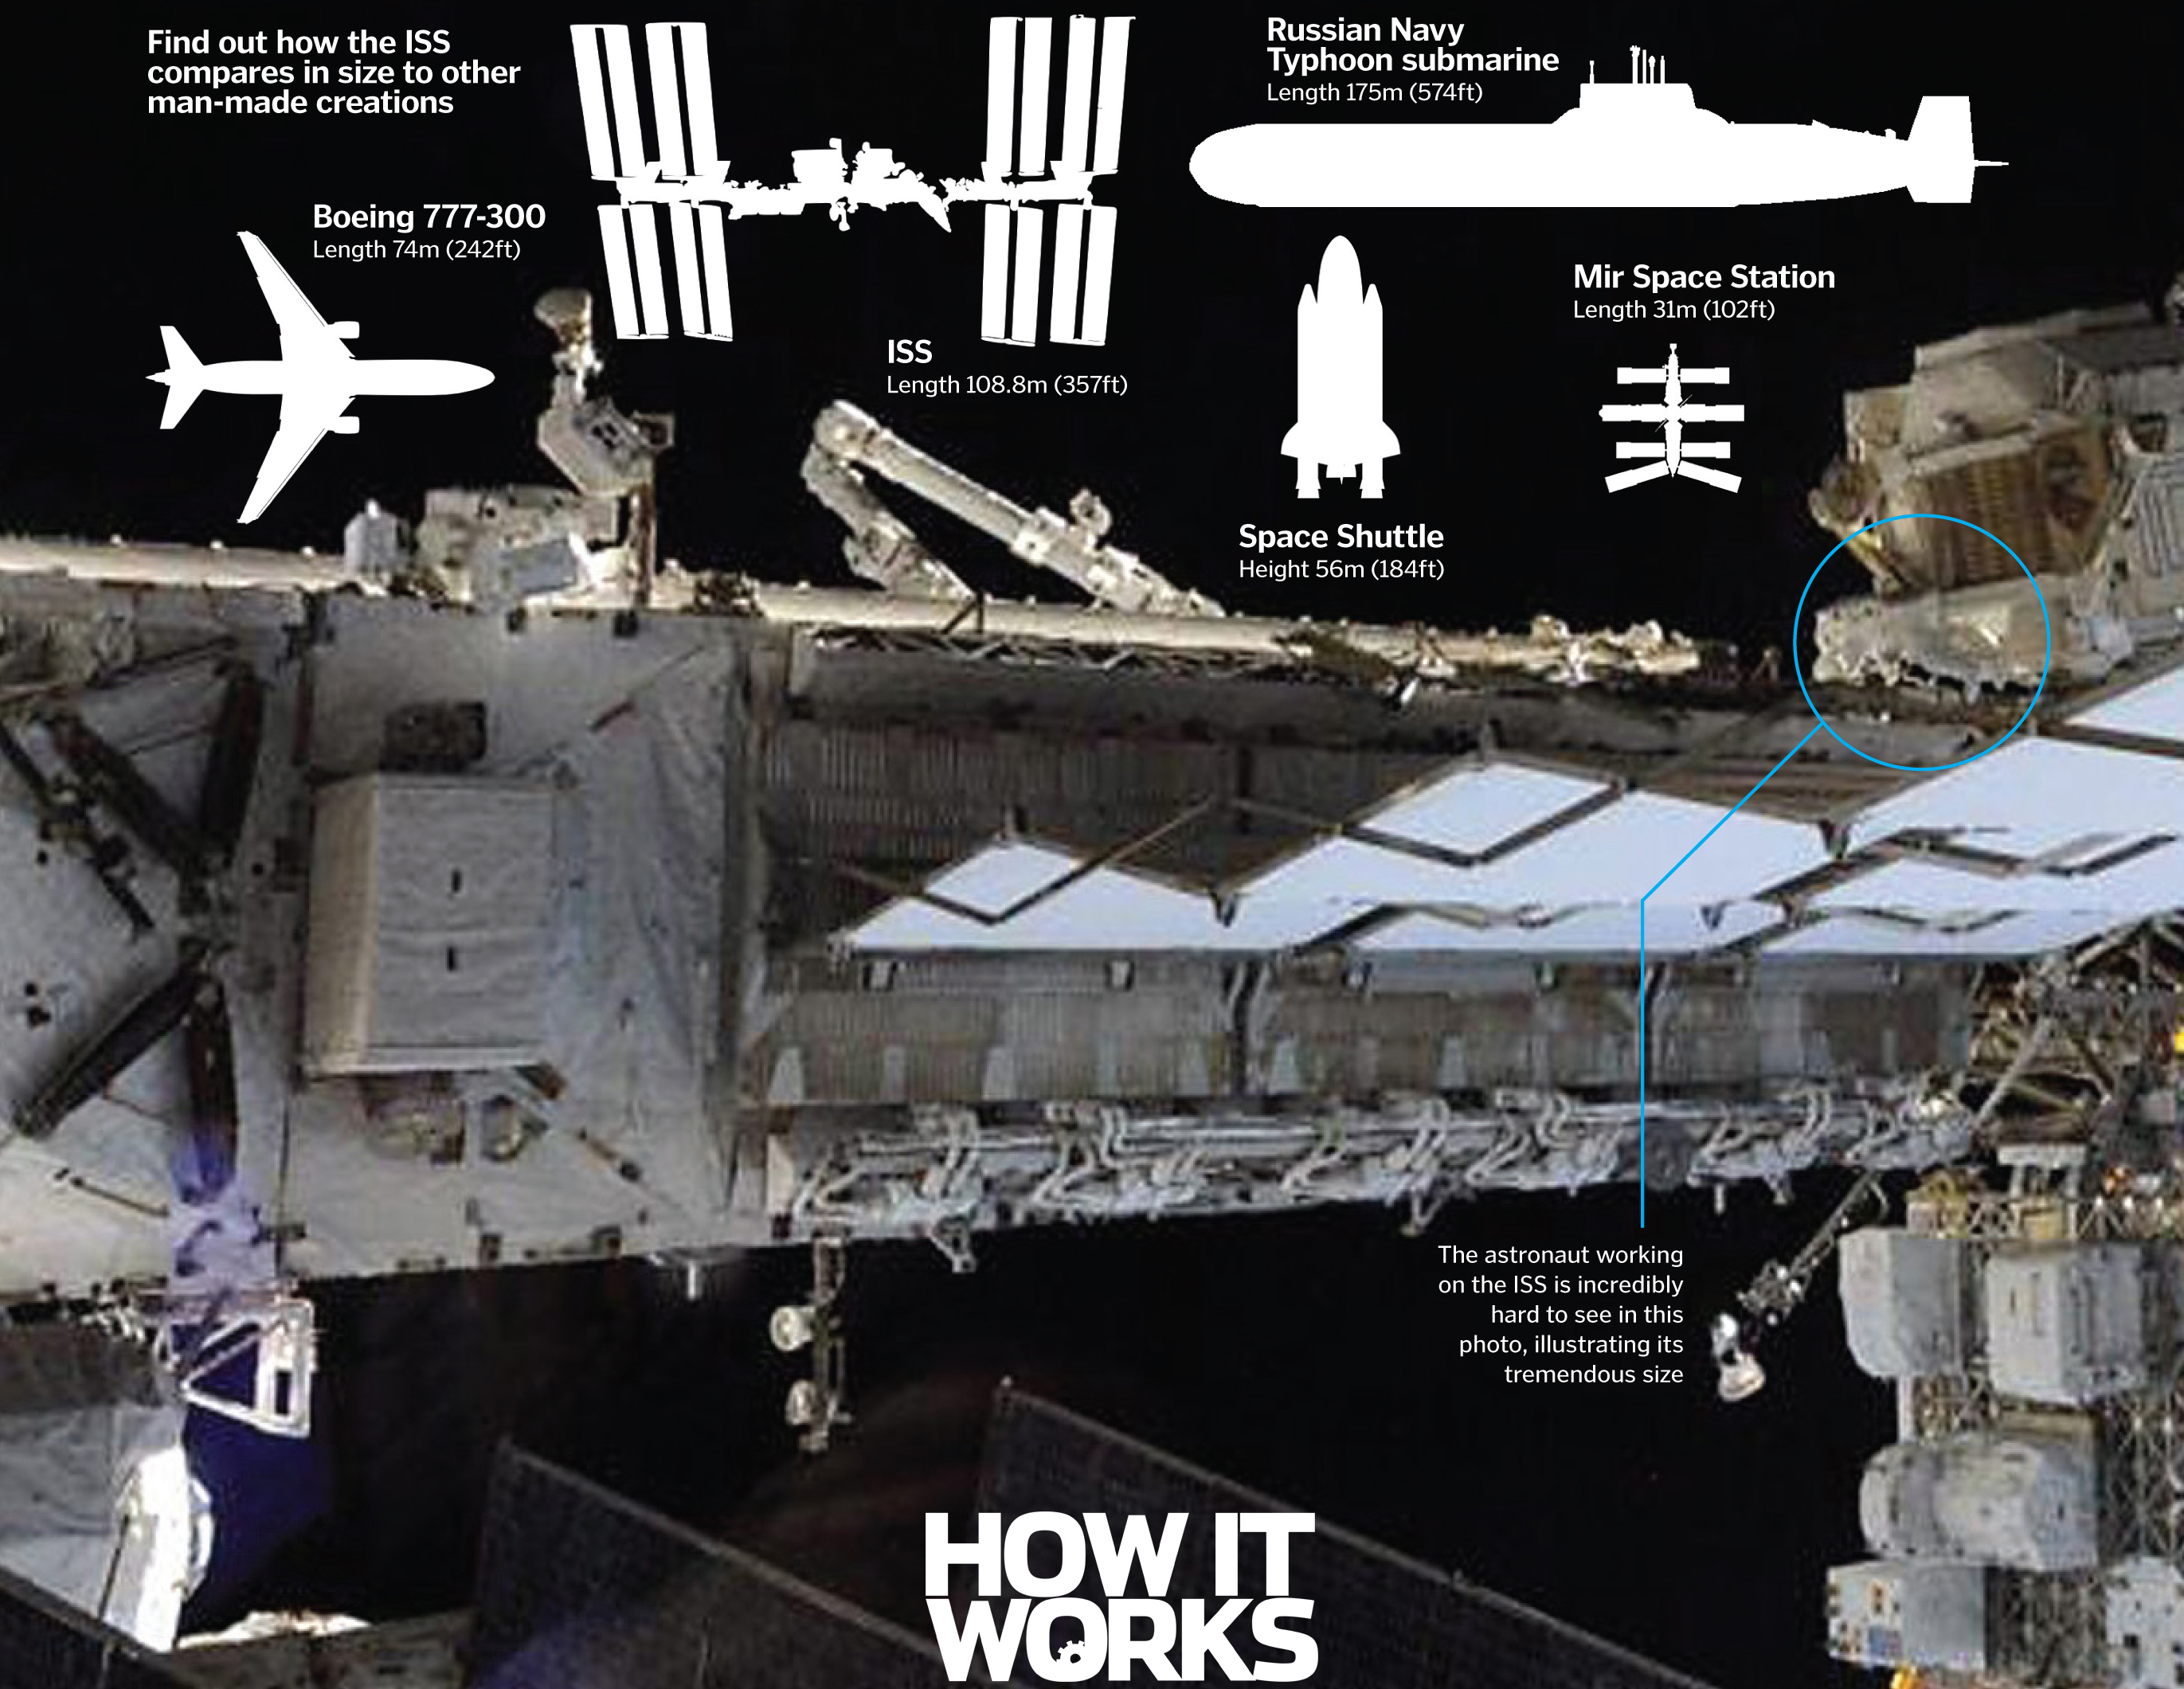 How big is the ISS?